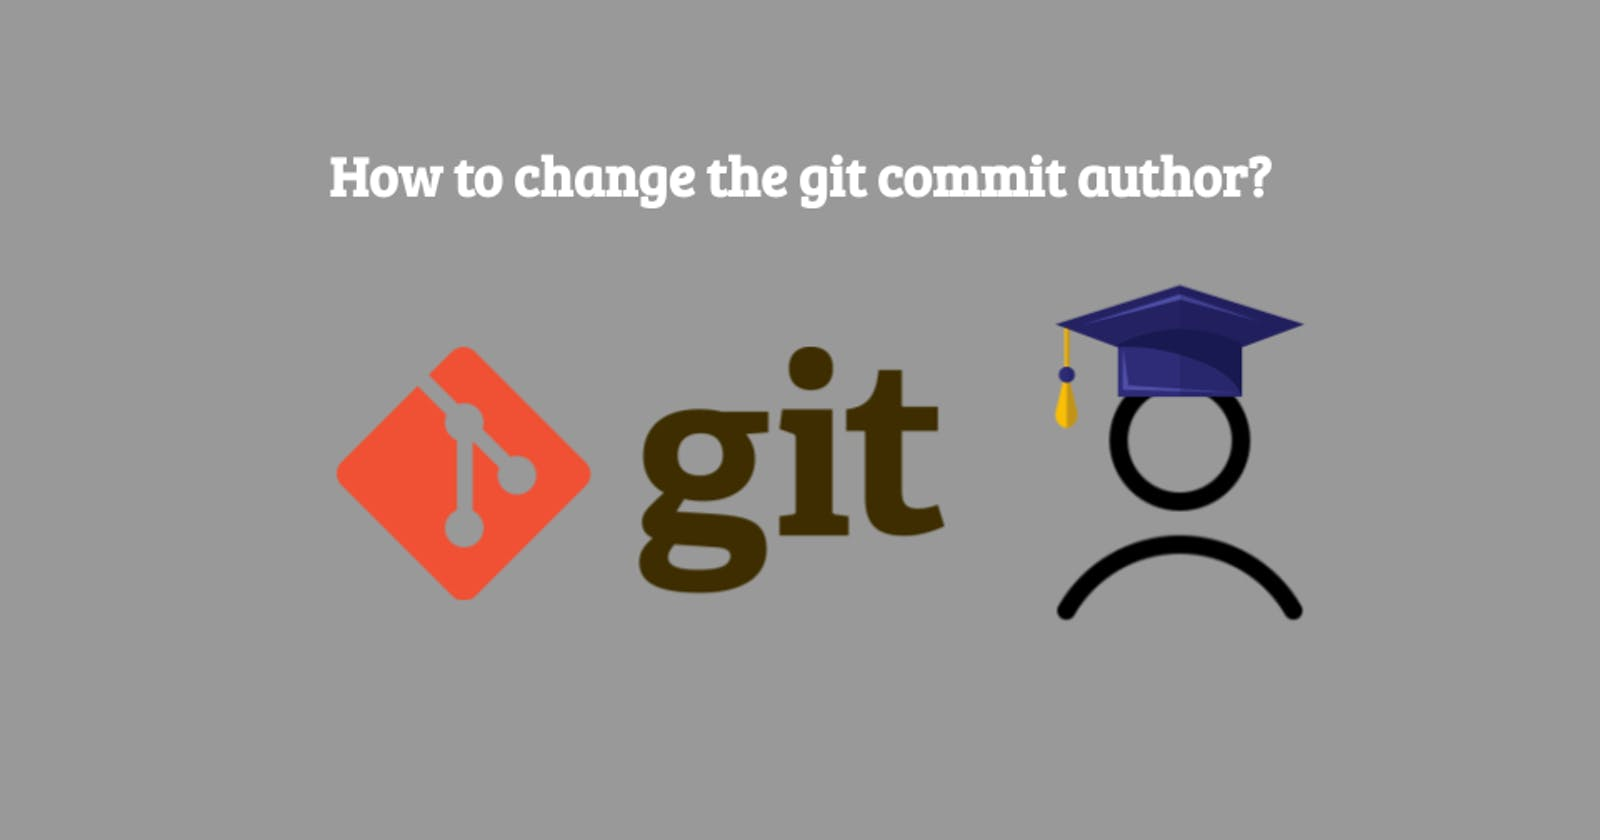 How to change the git commit author?